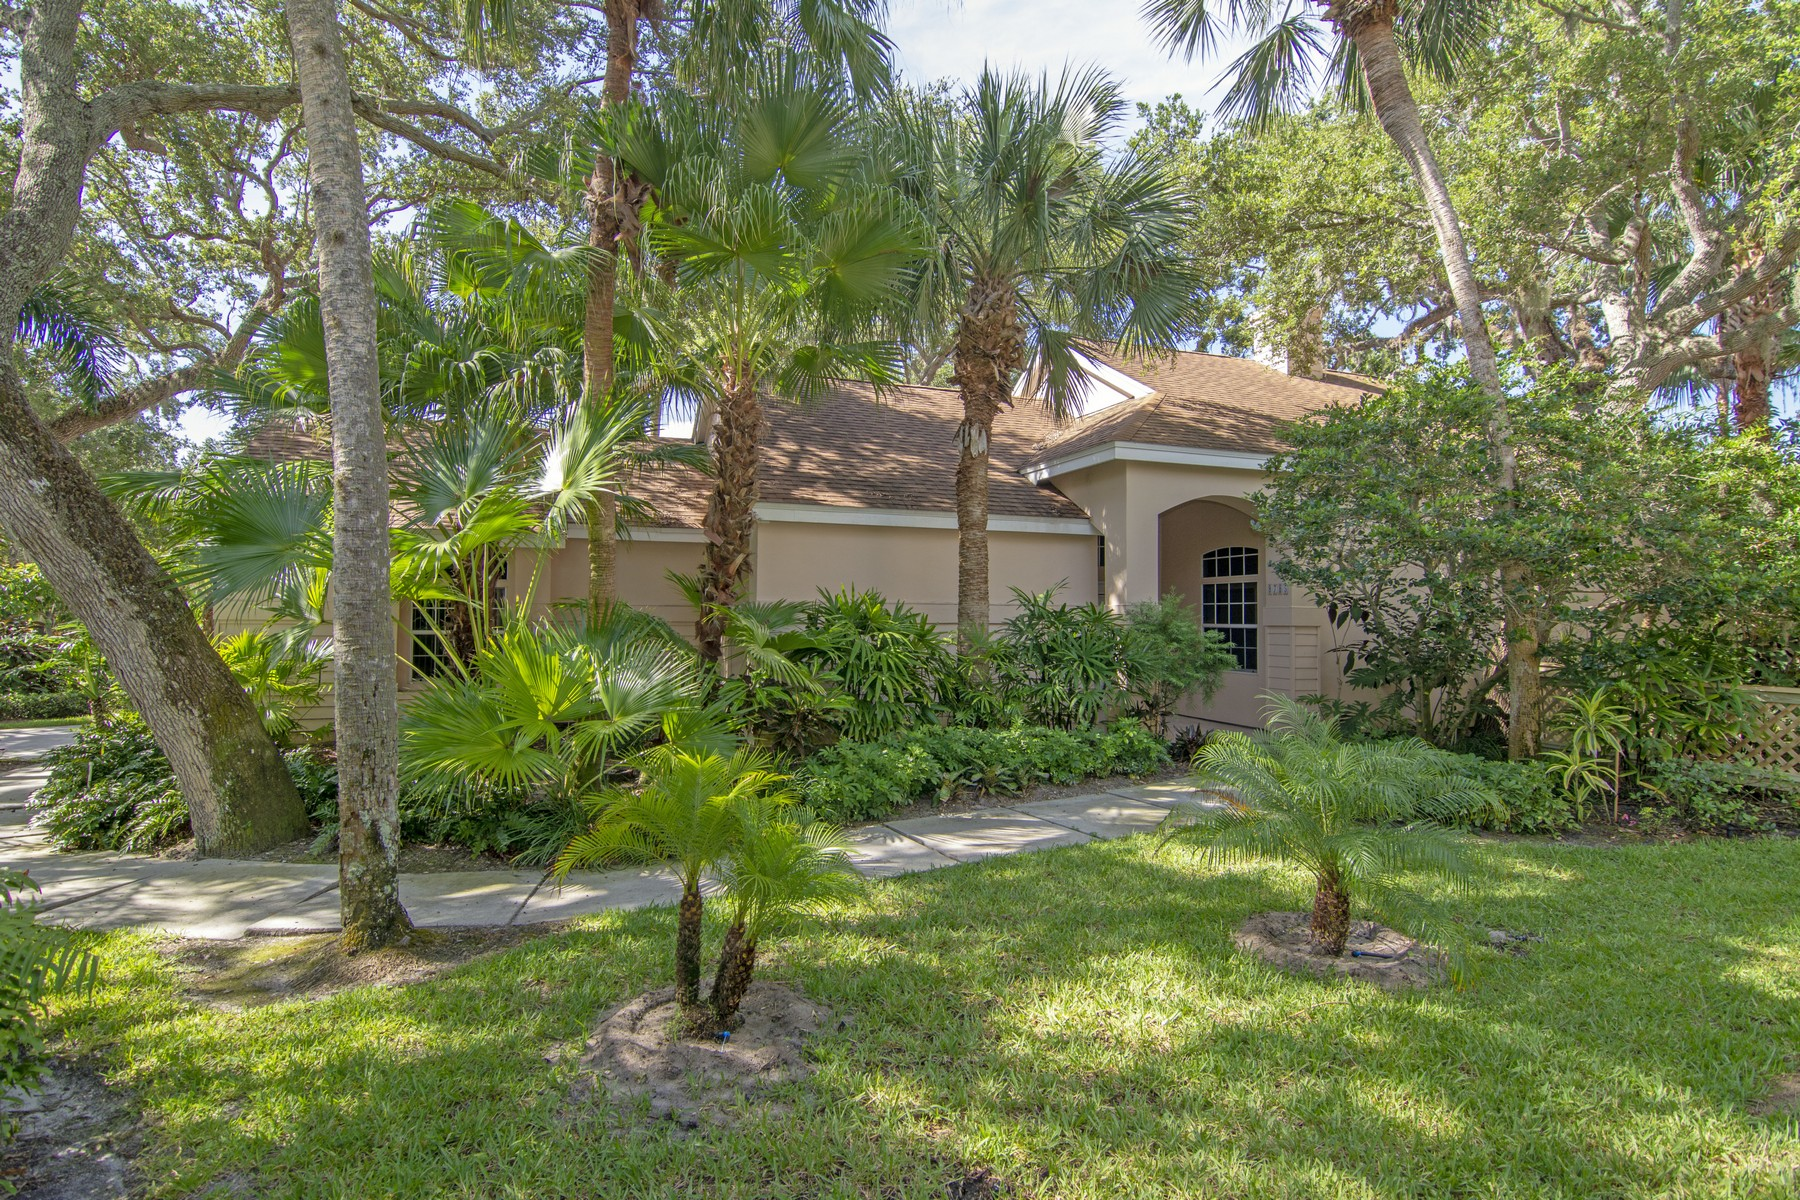 Single Family Home for Sale at Sea Oaks River Home 8785 Lakeside Boulevard Vero Beach, Florida 32963 United States